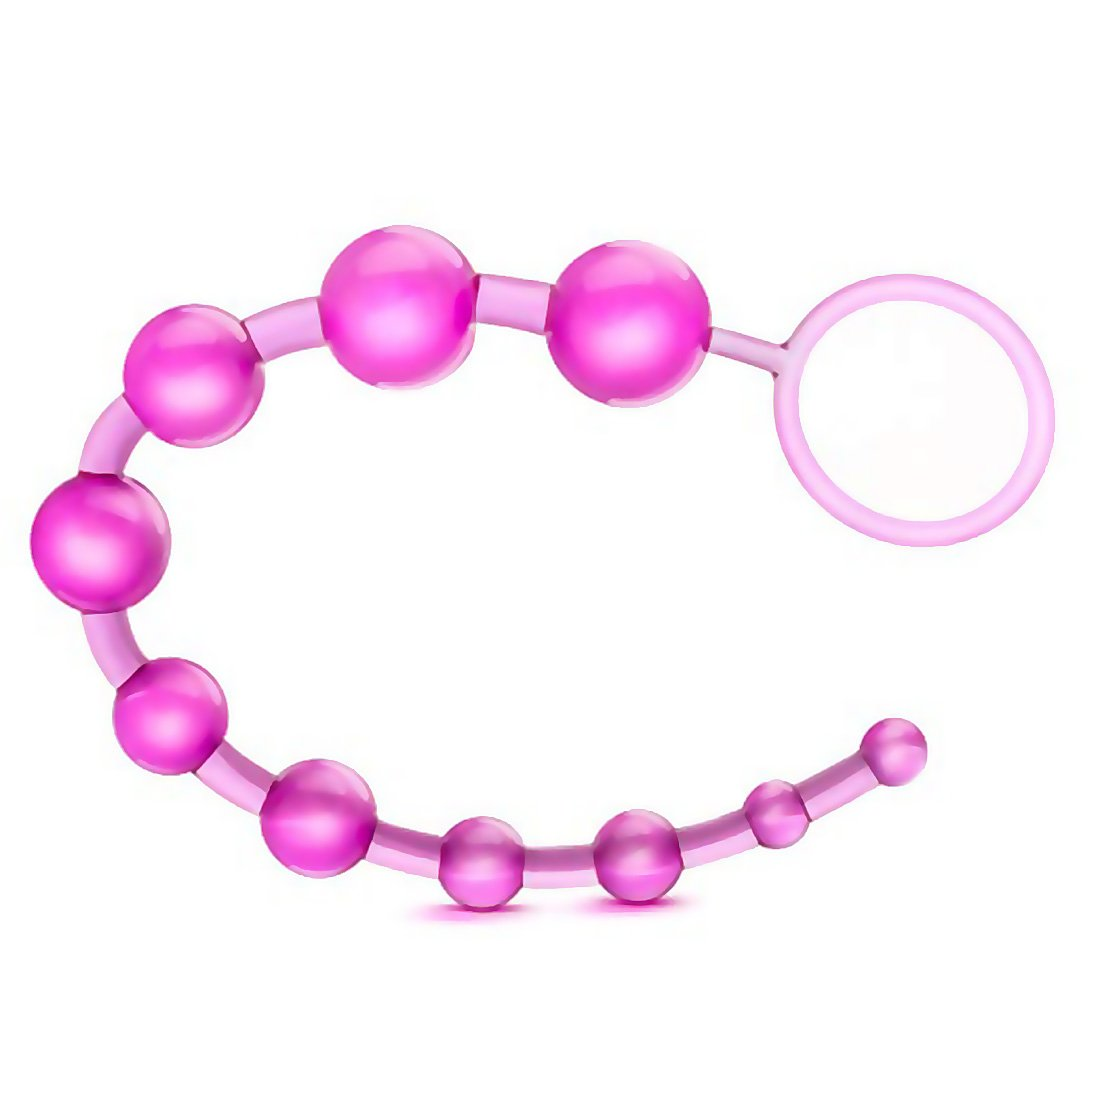 Cock ring with anal beads